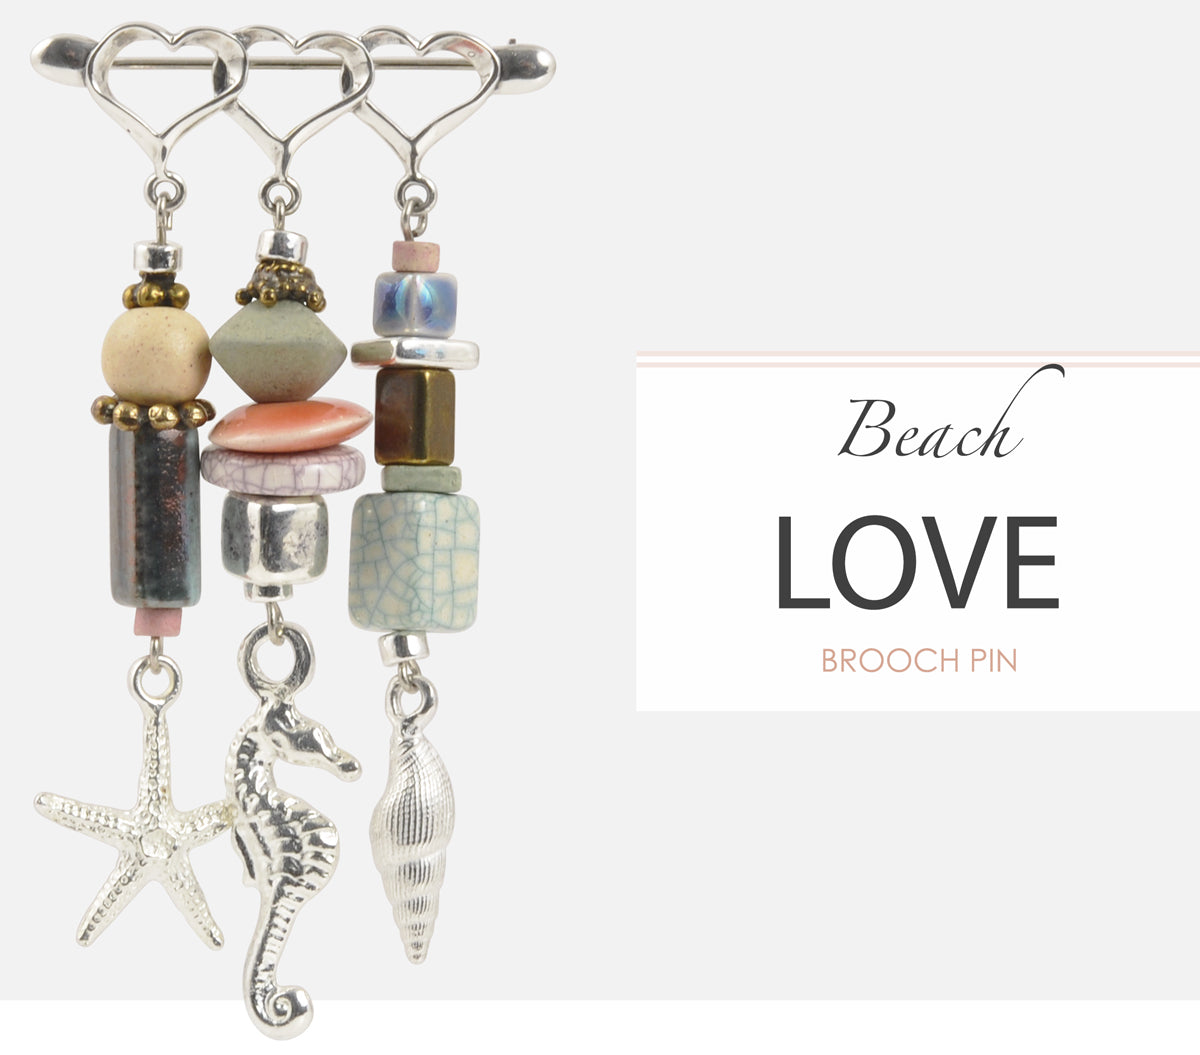 Beach Love Brooch Pin Tamara Scott Designs